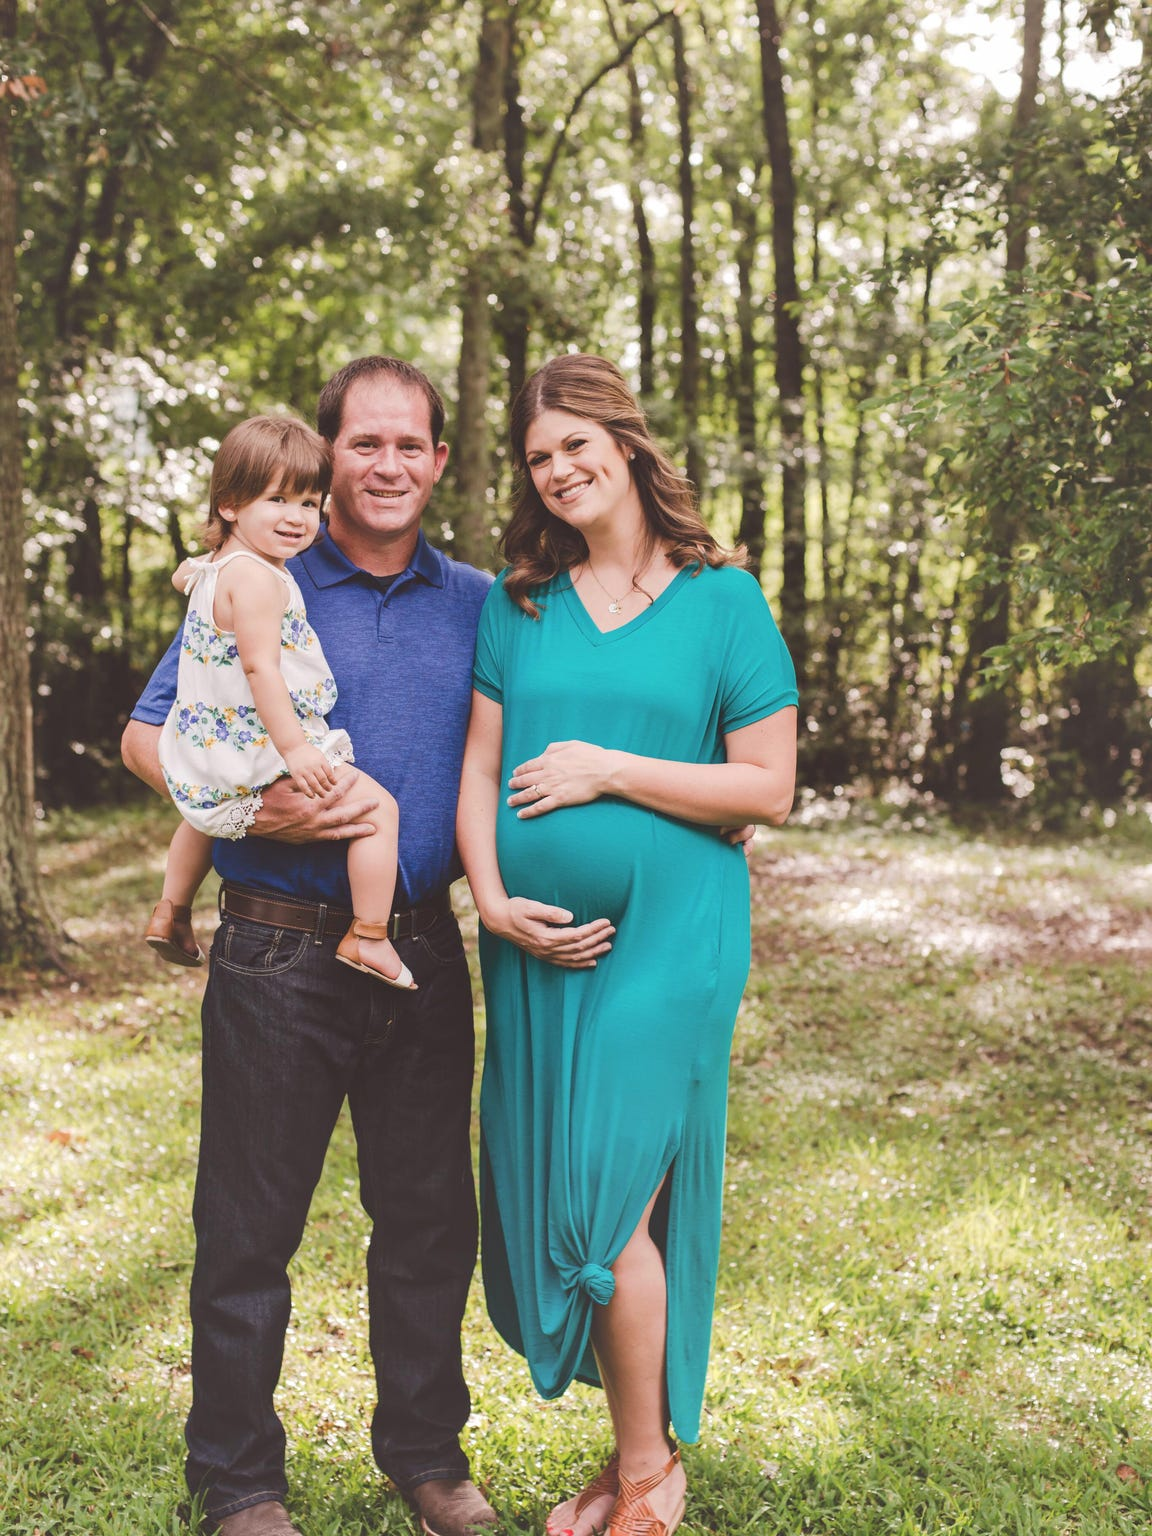 The Decell family poses for a maternity shot.